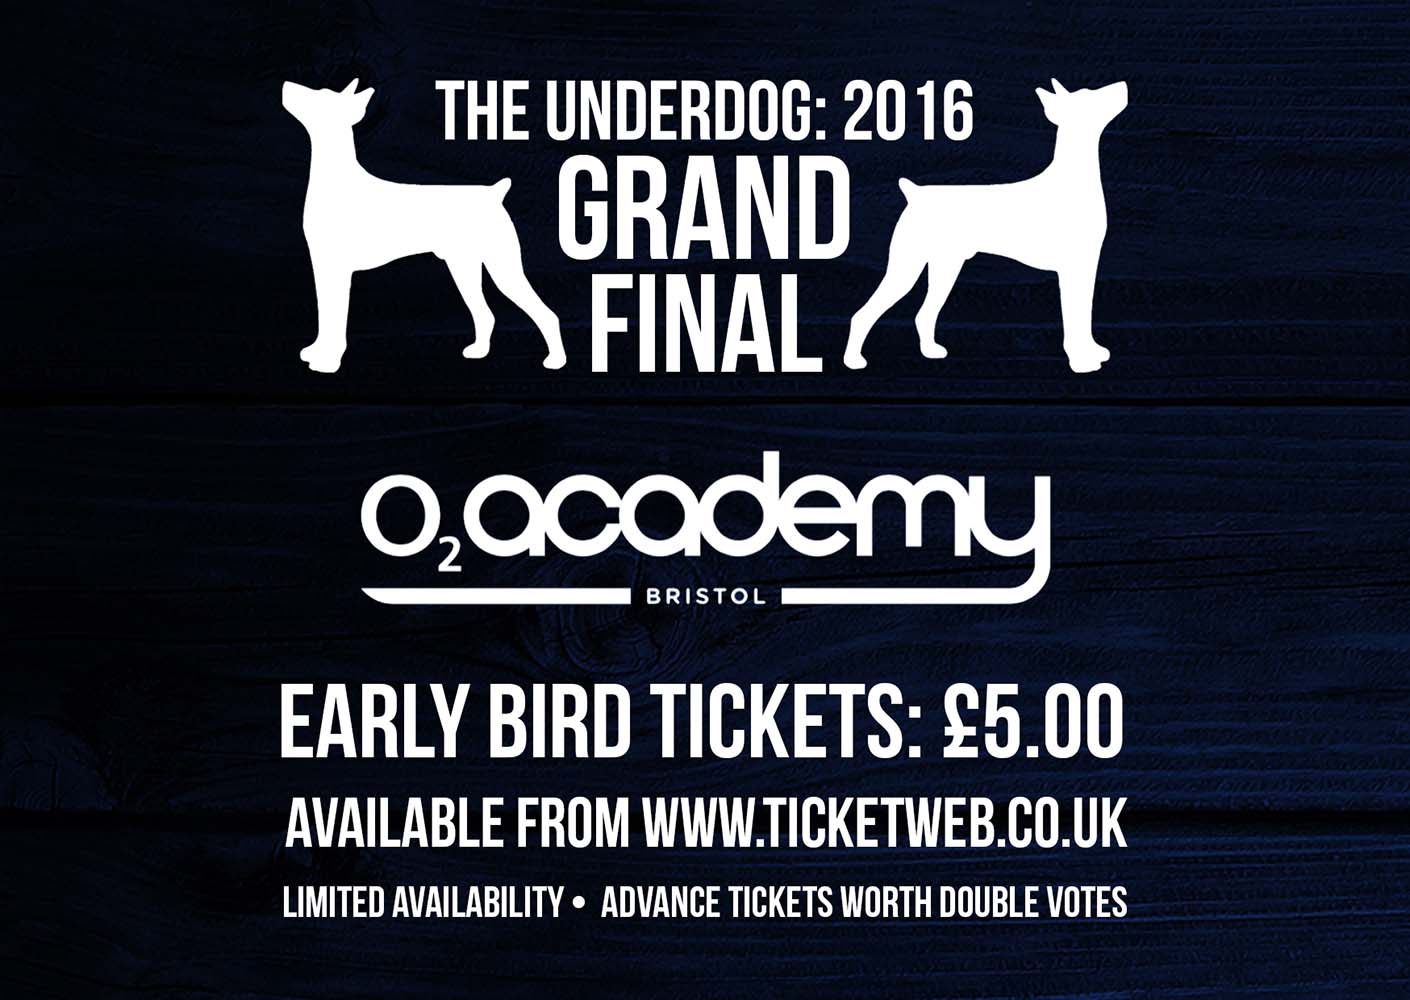 EARLY BIRD TICKETS FOR THE FINAL ON SALE NOW